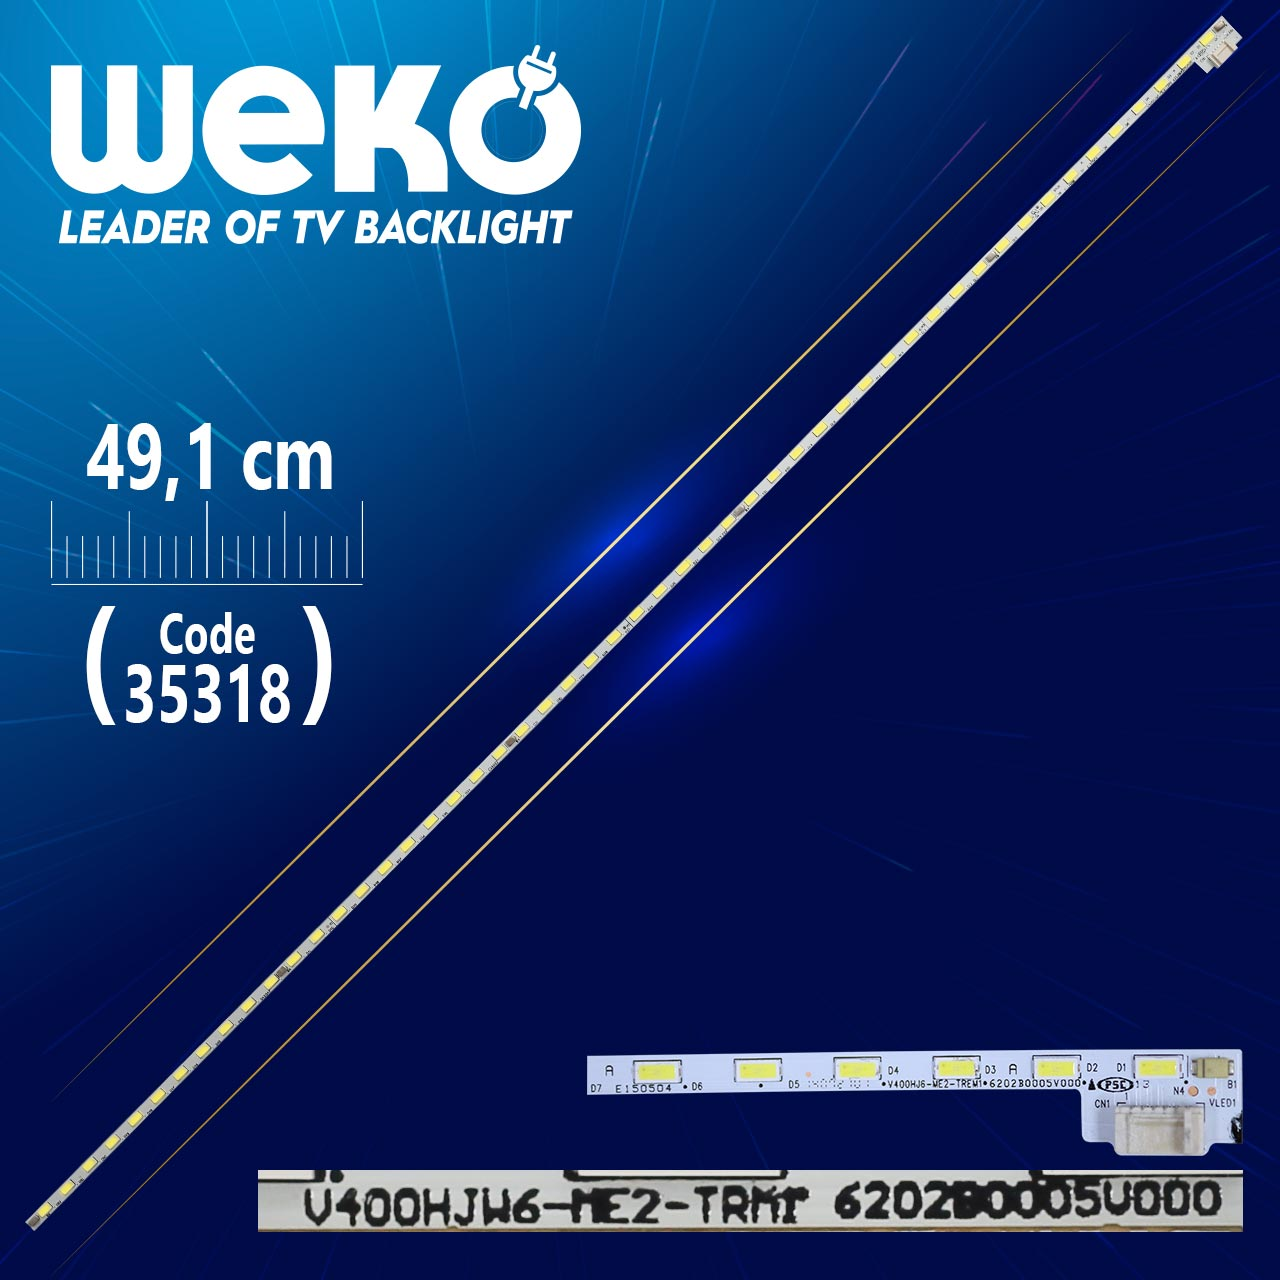 LED STRIP ELED V400HJ6-ME2-TREM1 52LED 490MM LED STRIP ELED V400HJ6-ME2-TREM1 52LED 490MM